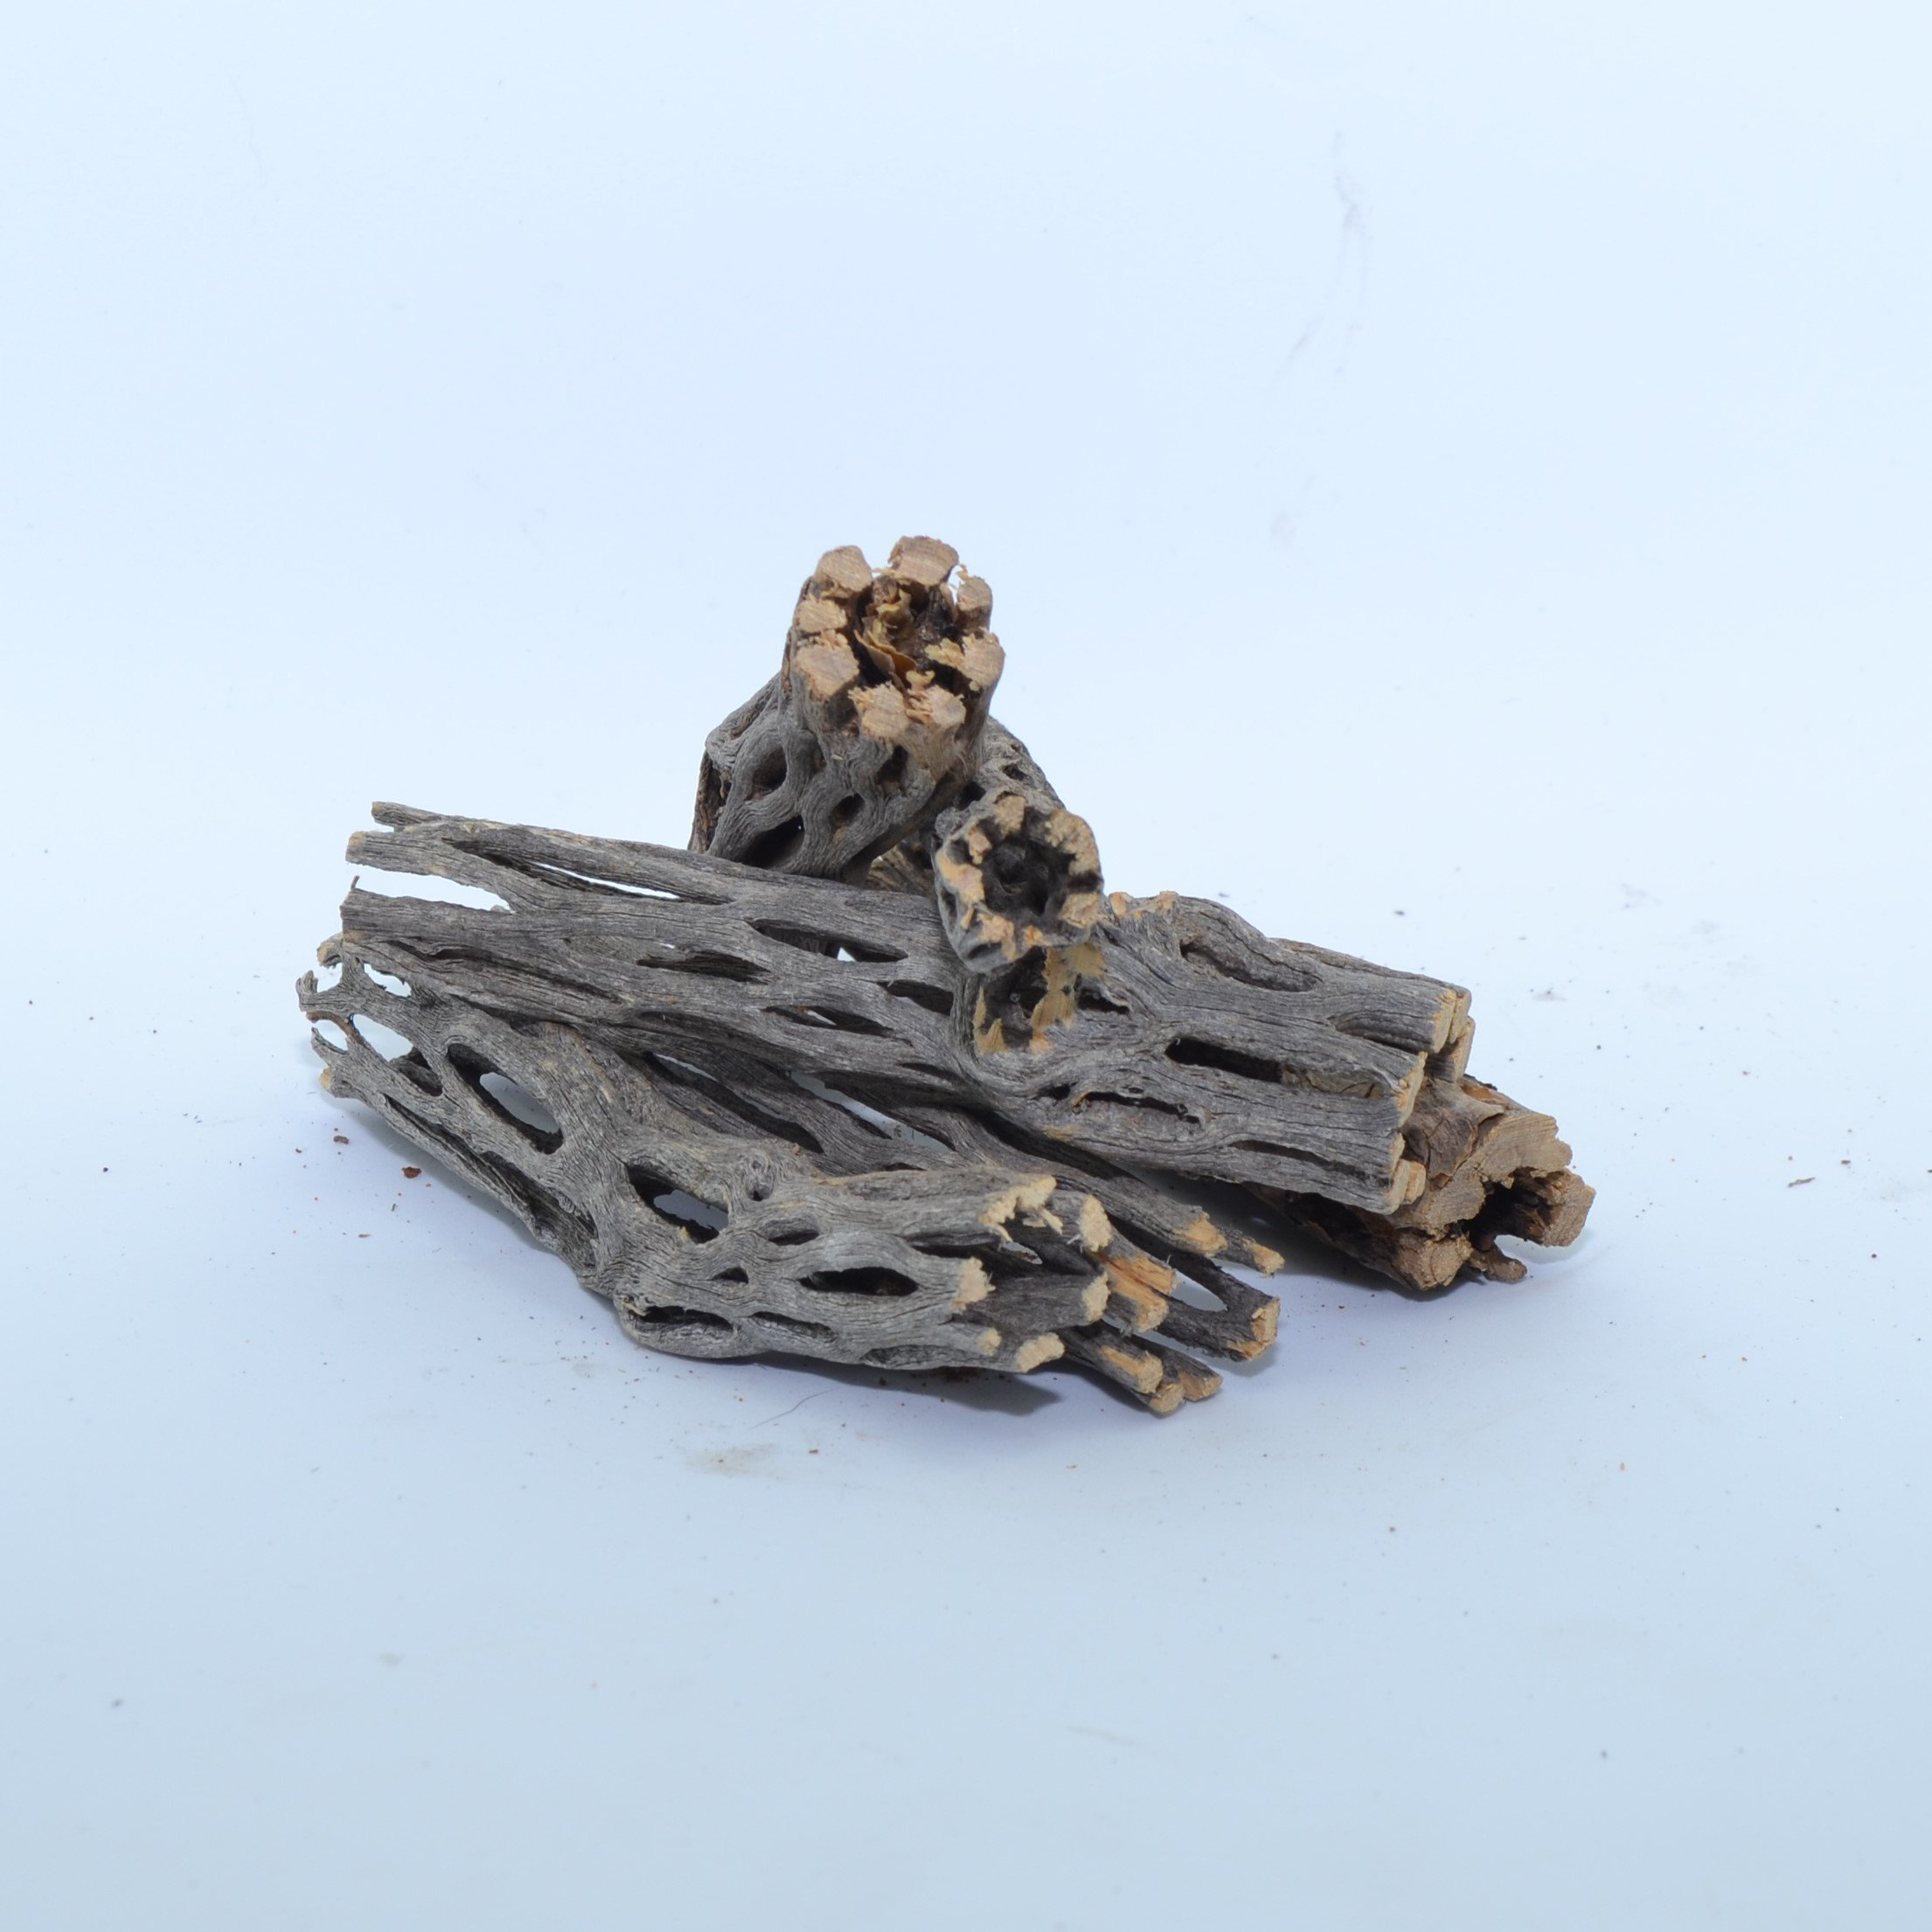 NApremium Natural Cholla Wood | 6 Pieces of 3'' Long Natural Cholla Wood for Aquarium Decoration, Hermit Crabs, Shrimp